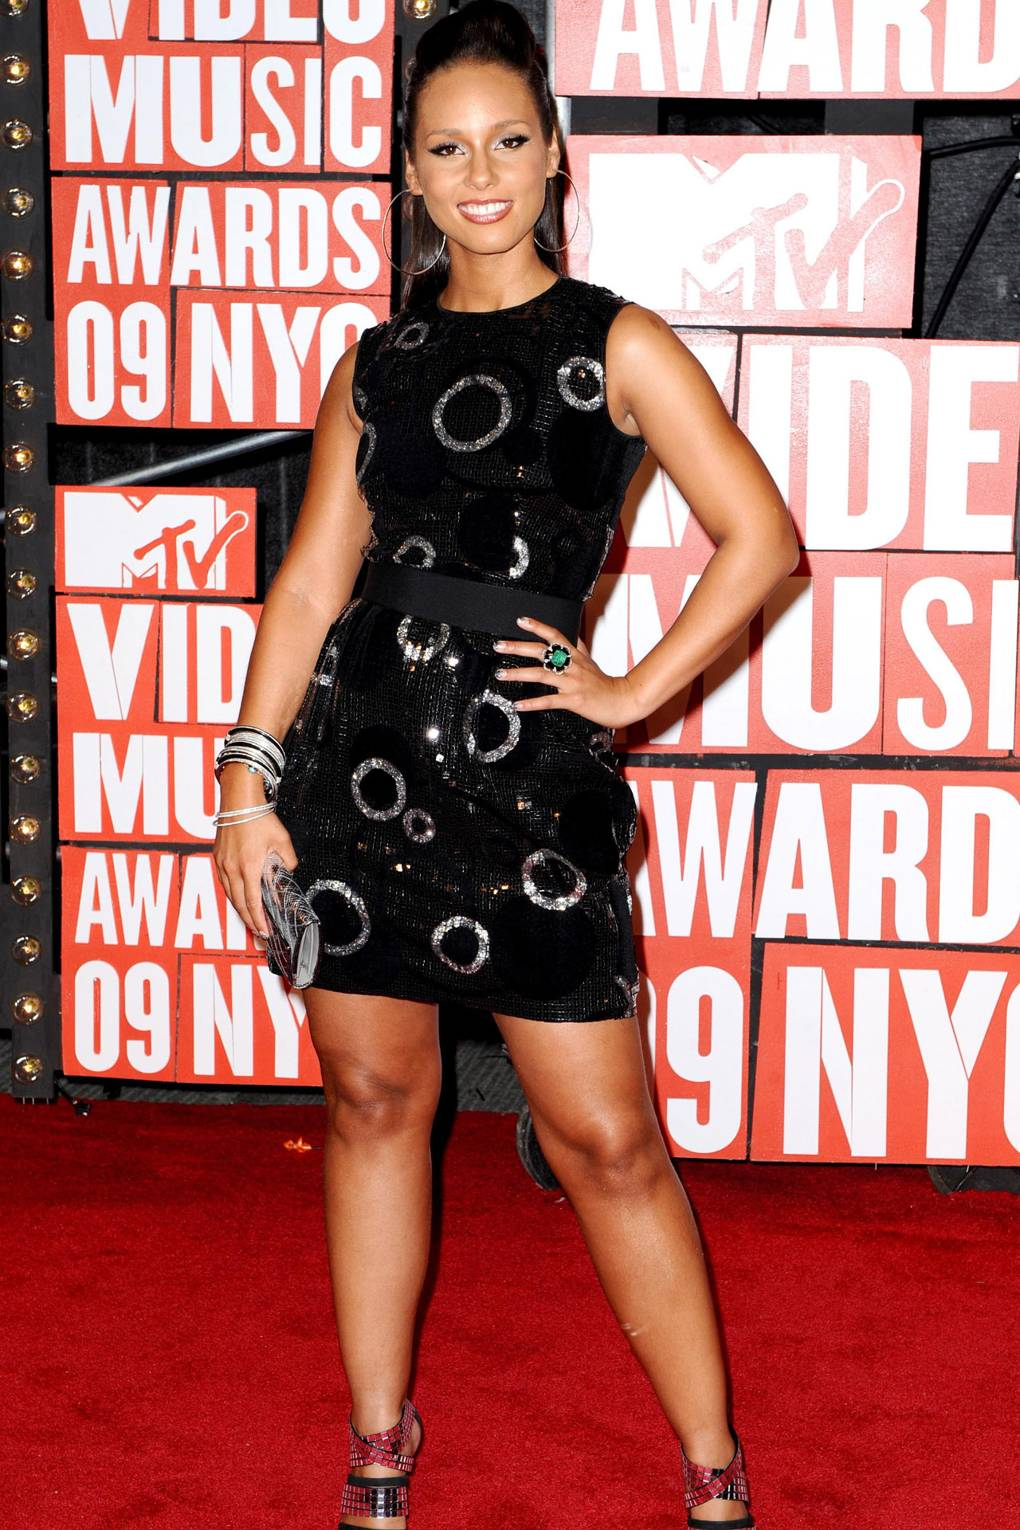 b08c63e8 Red carpet fashion and style at the 2009 MTV Video Music Awards | British  Vogue